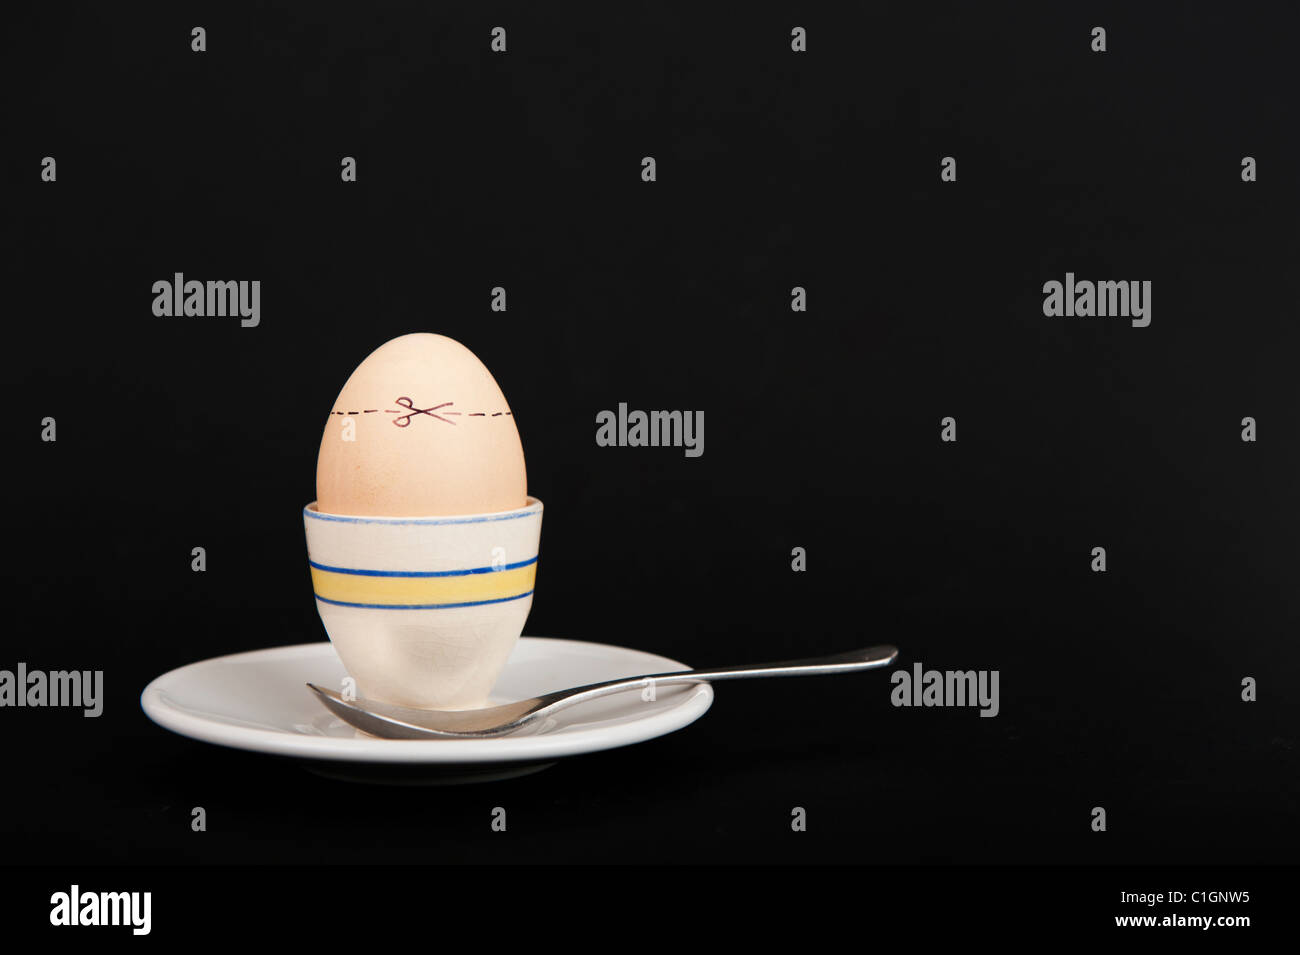 Stock photo of an egg in an egg cup with cut here lines across the shell. - Stock Image